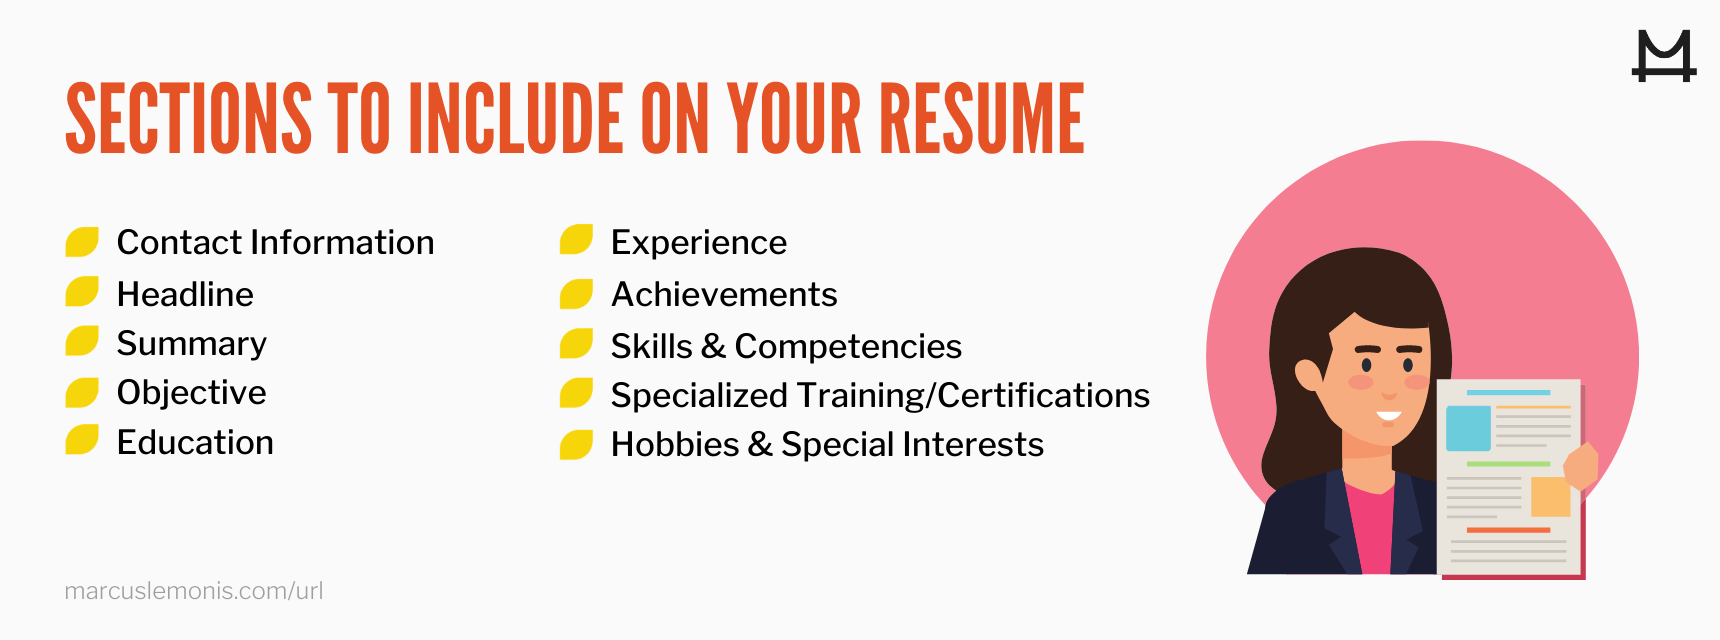 List of sections you should include on your resume